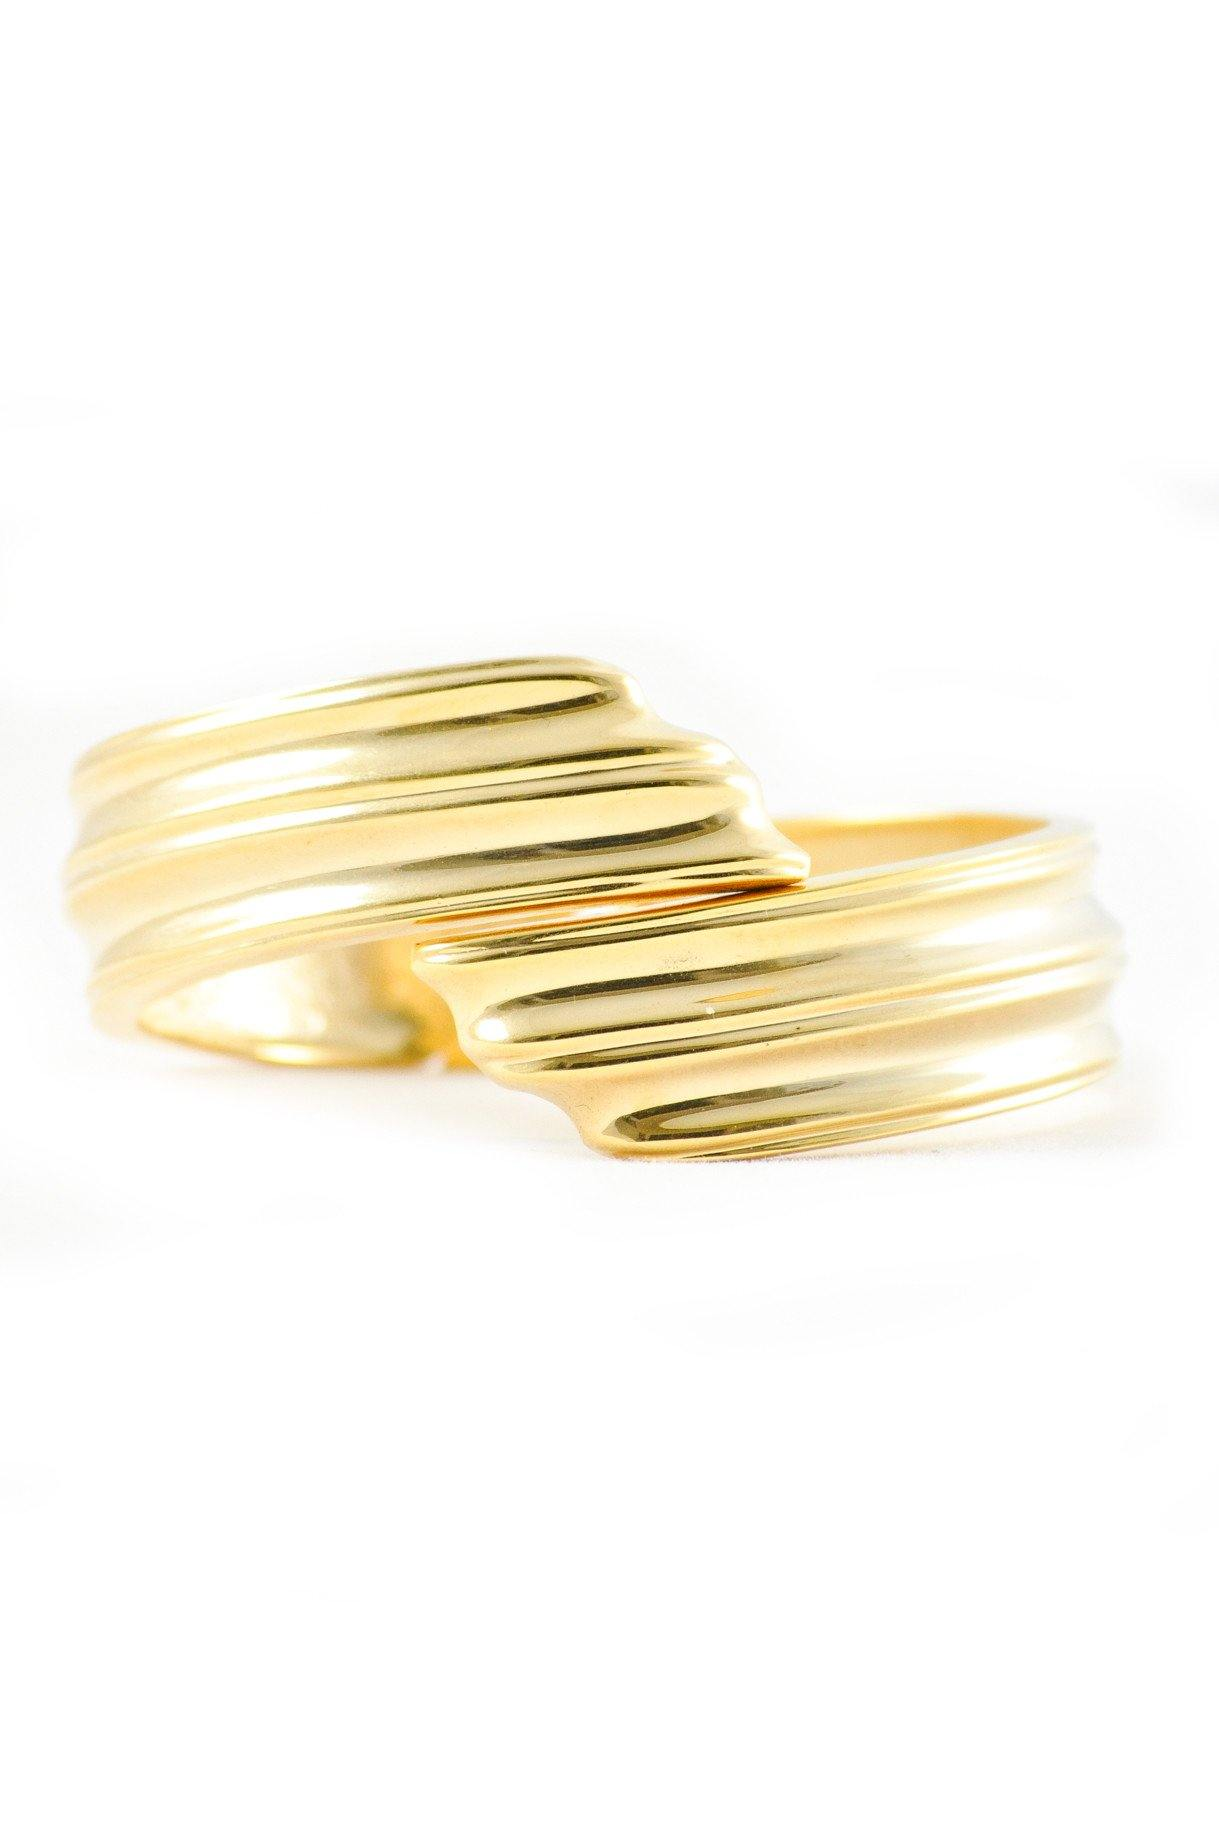 80's__Vintage__Textured Gold Bangle